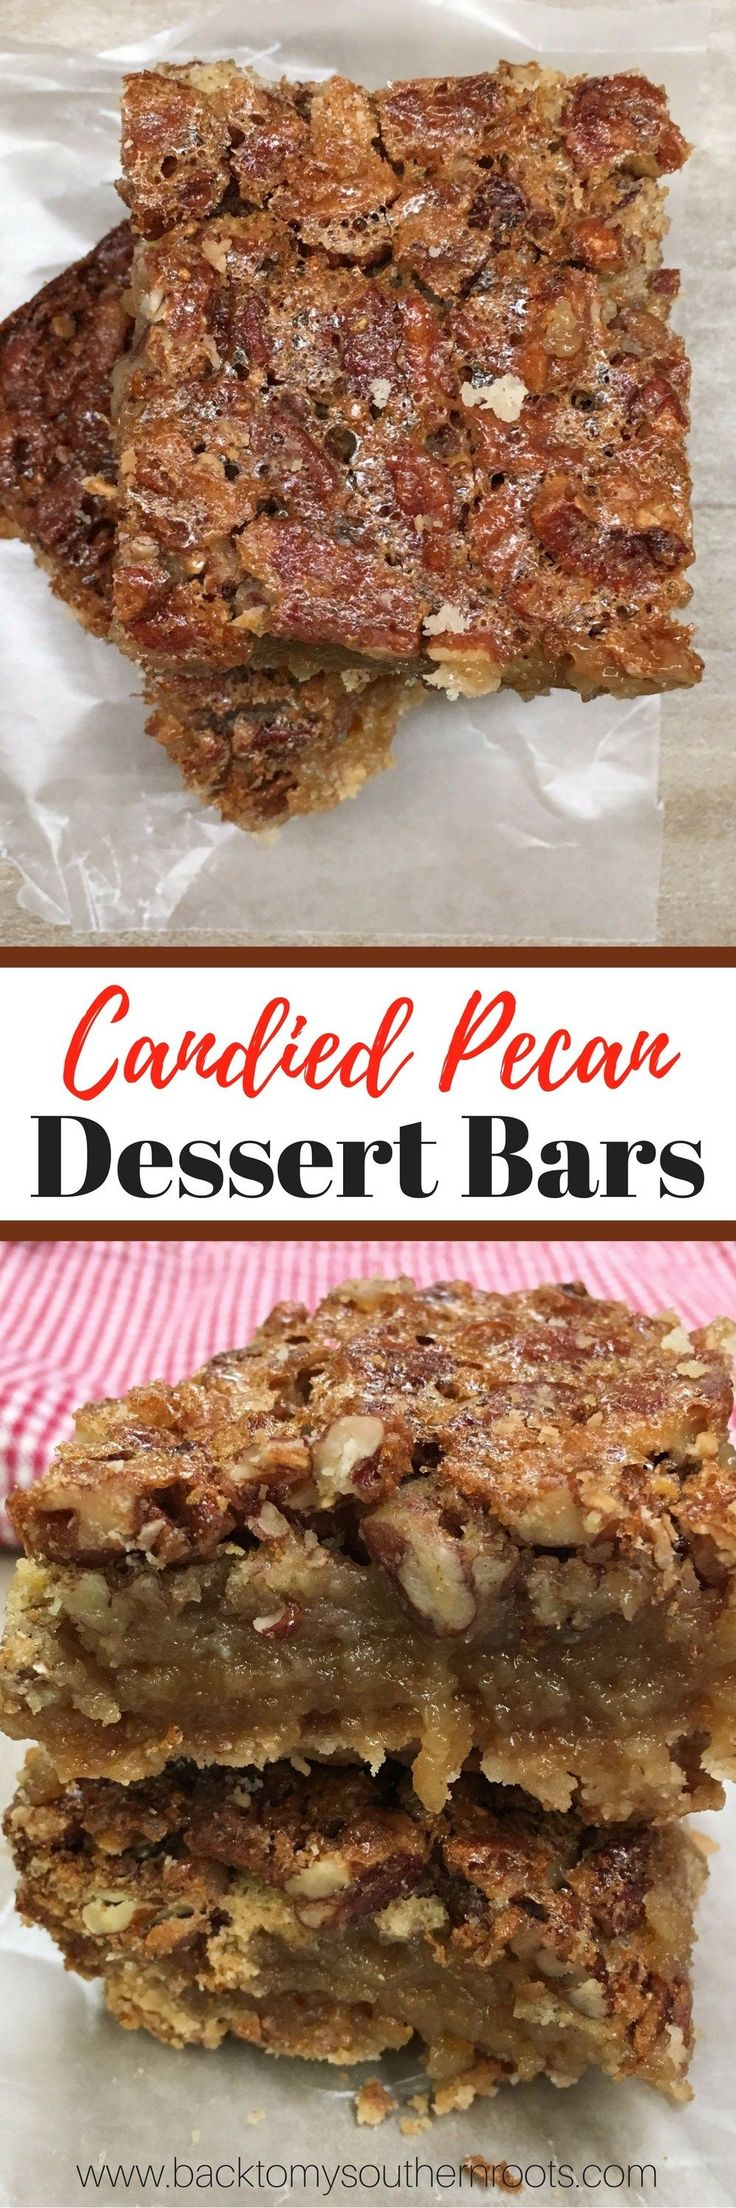 Candied Pecan Dessert Bars are easy to make. They are a delicious dessert for any time of the year, but especially the Thanksgiving and Christmas Holidays.